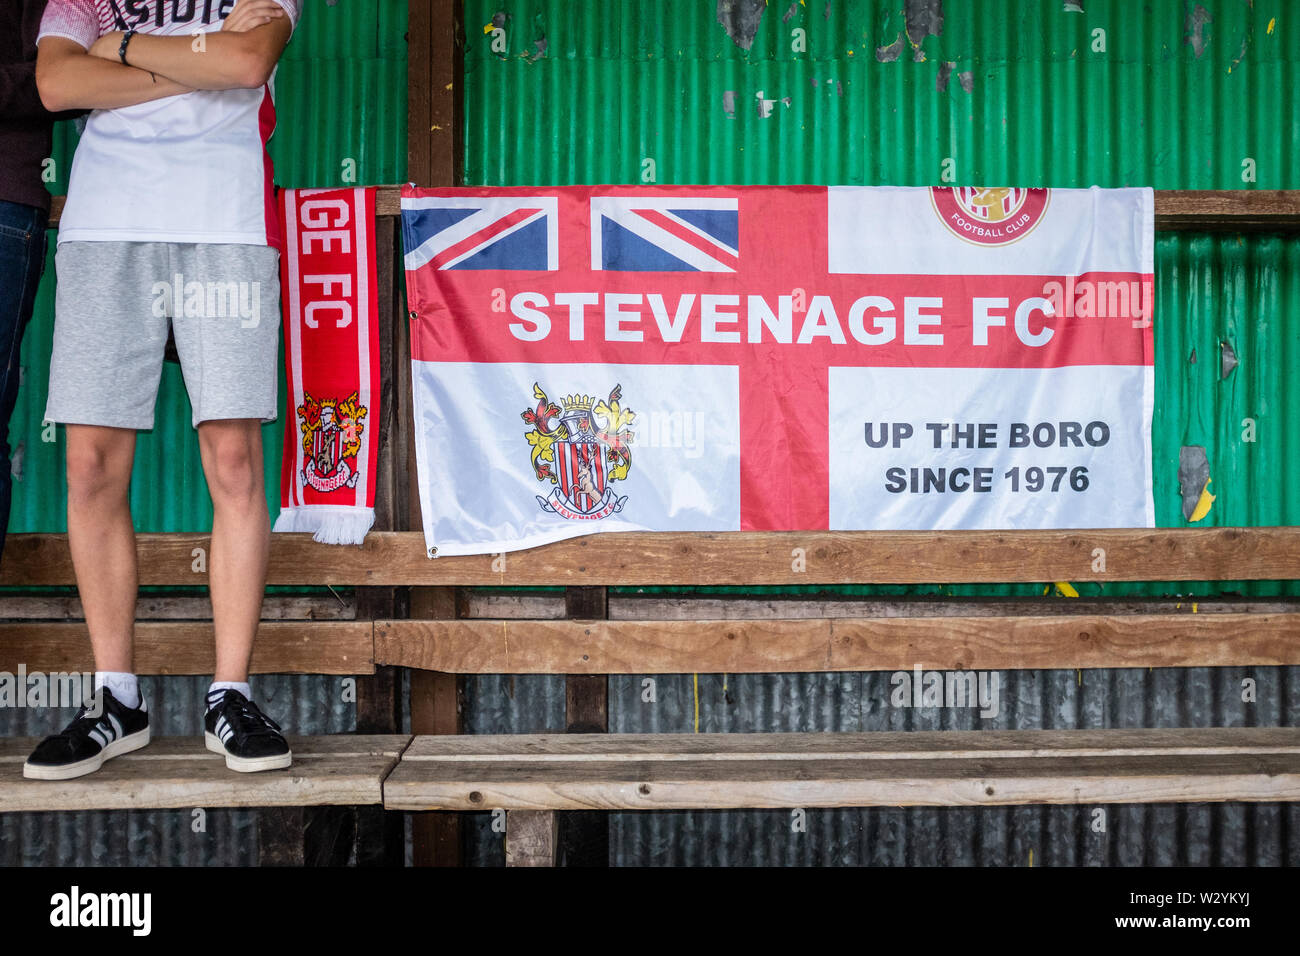 Unidentifiable fan standing beside England flag on terrace during game at football match Stock Photo